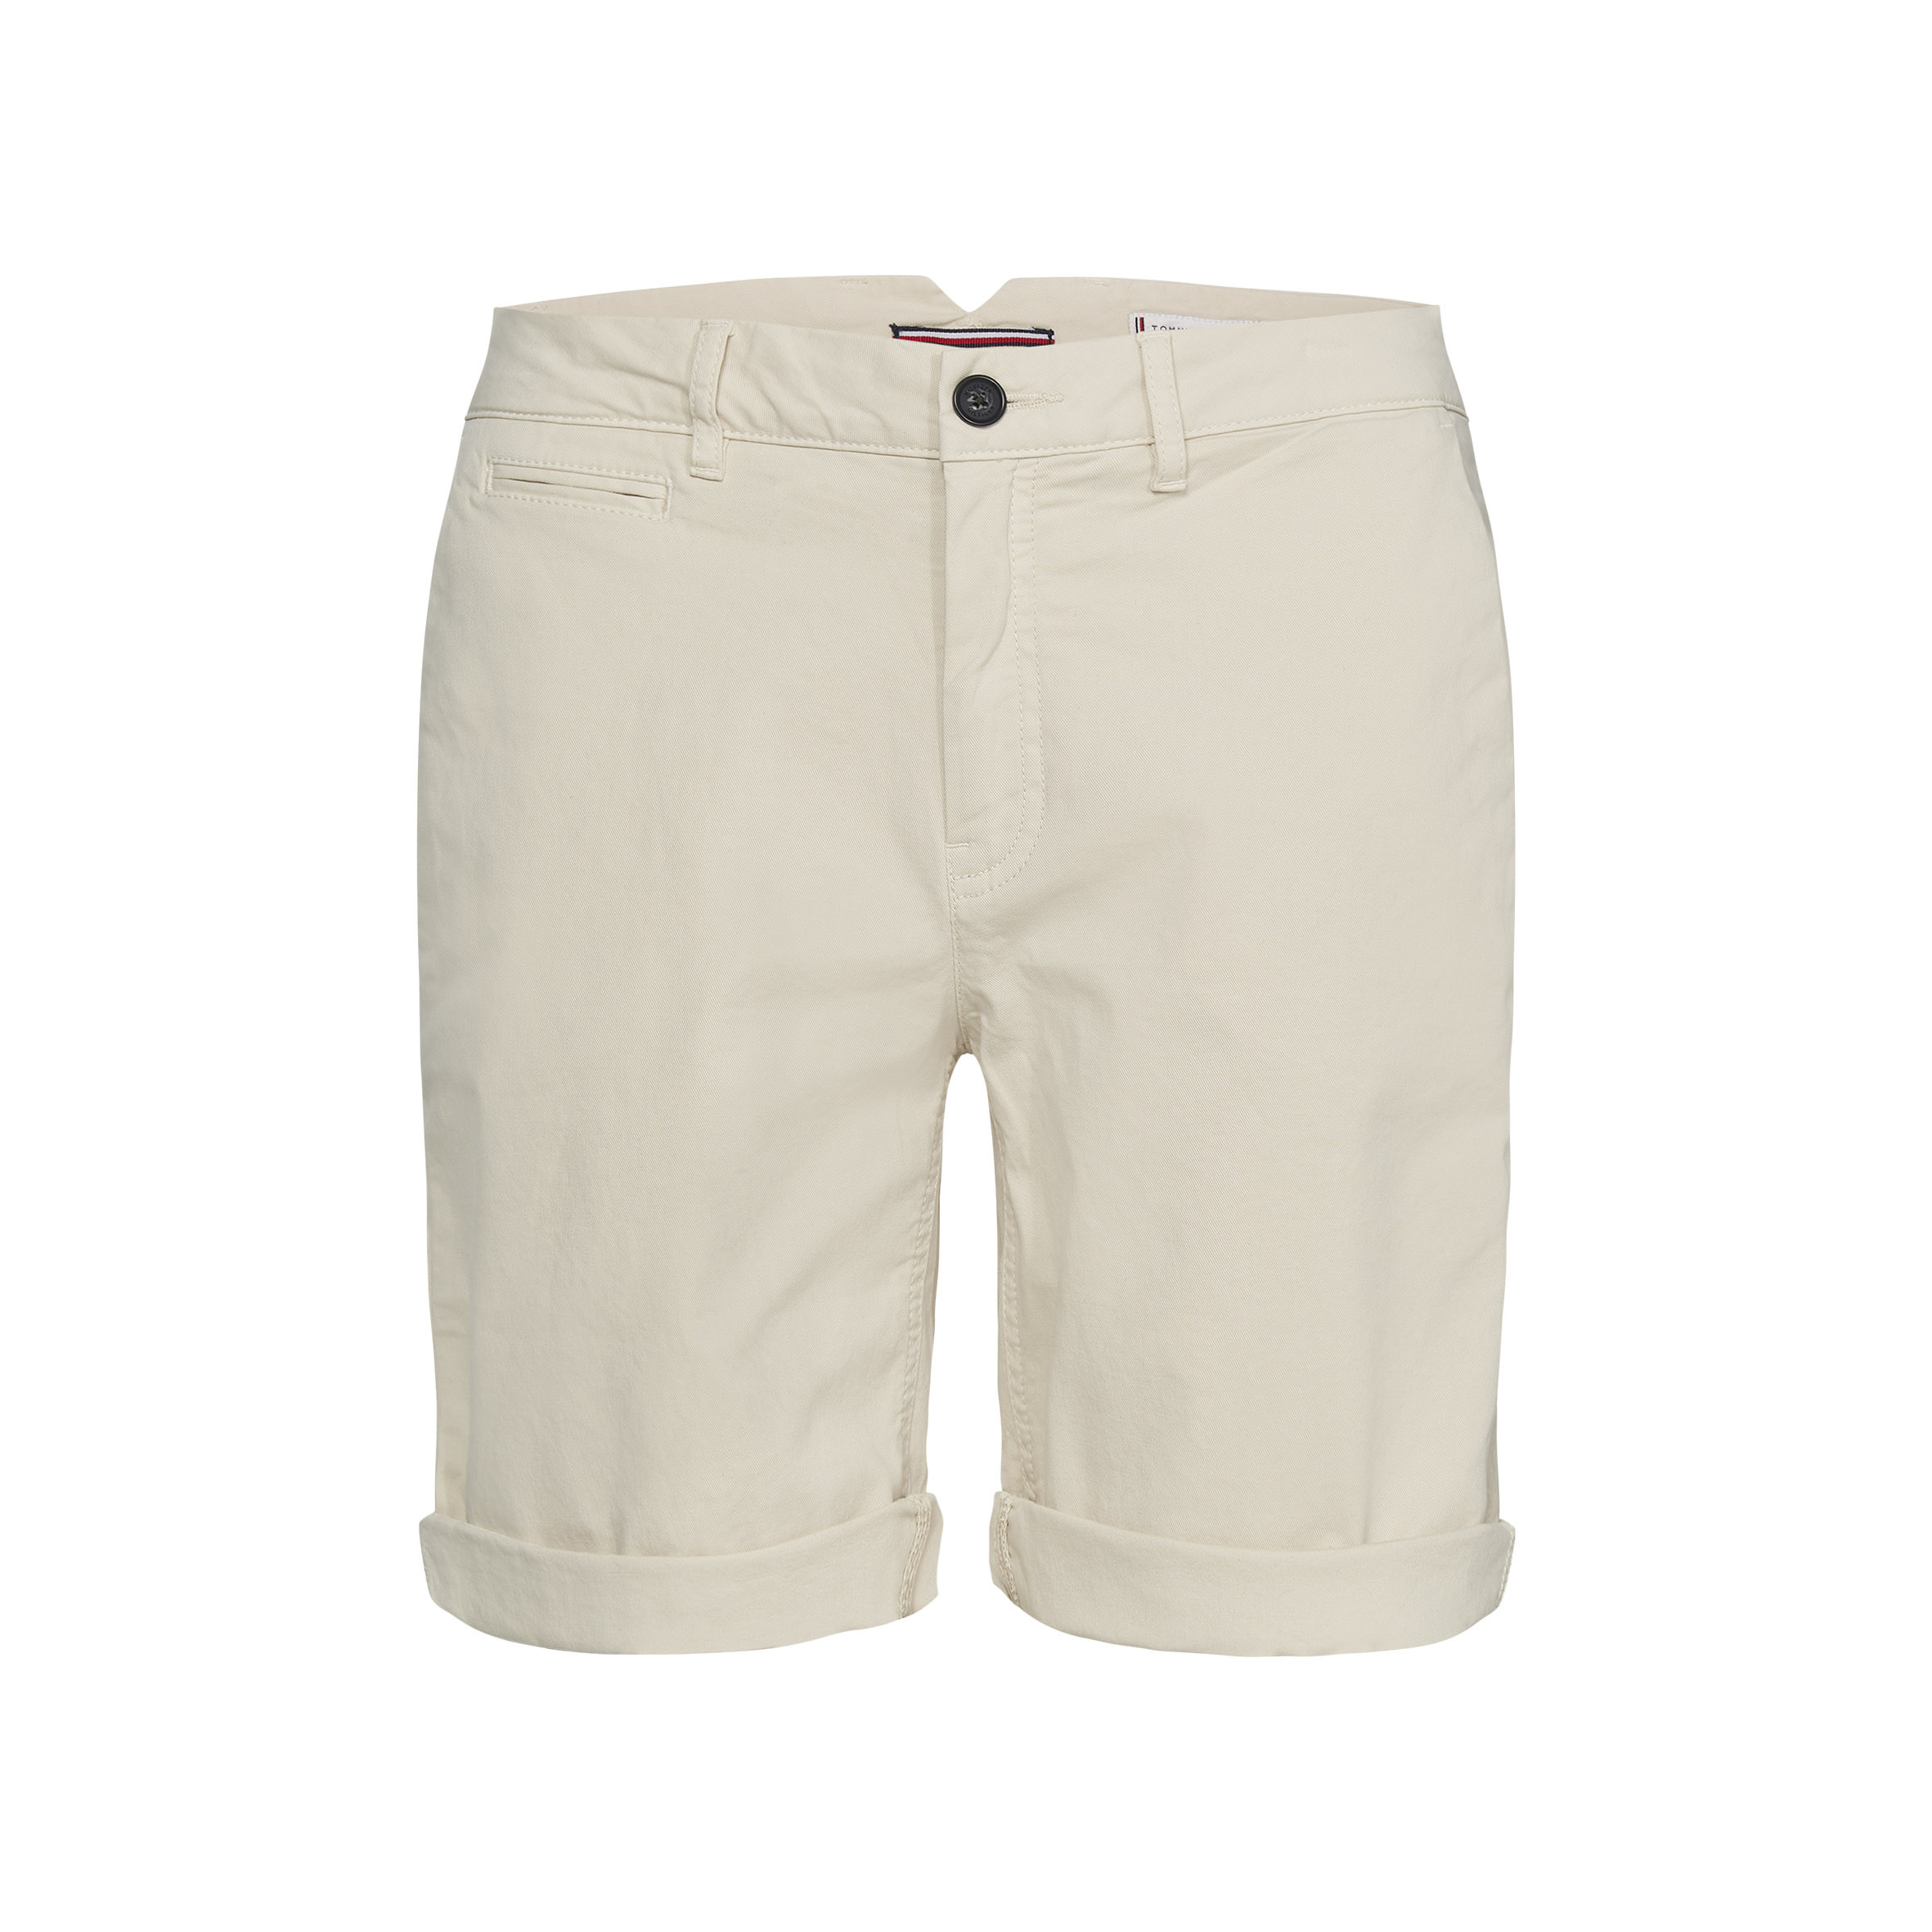 10c6e753 Hunter Bermuda - Skjørt & shorts - Dame